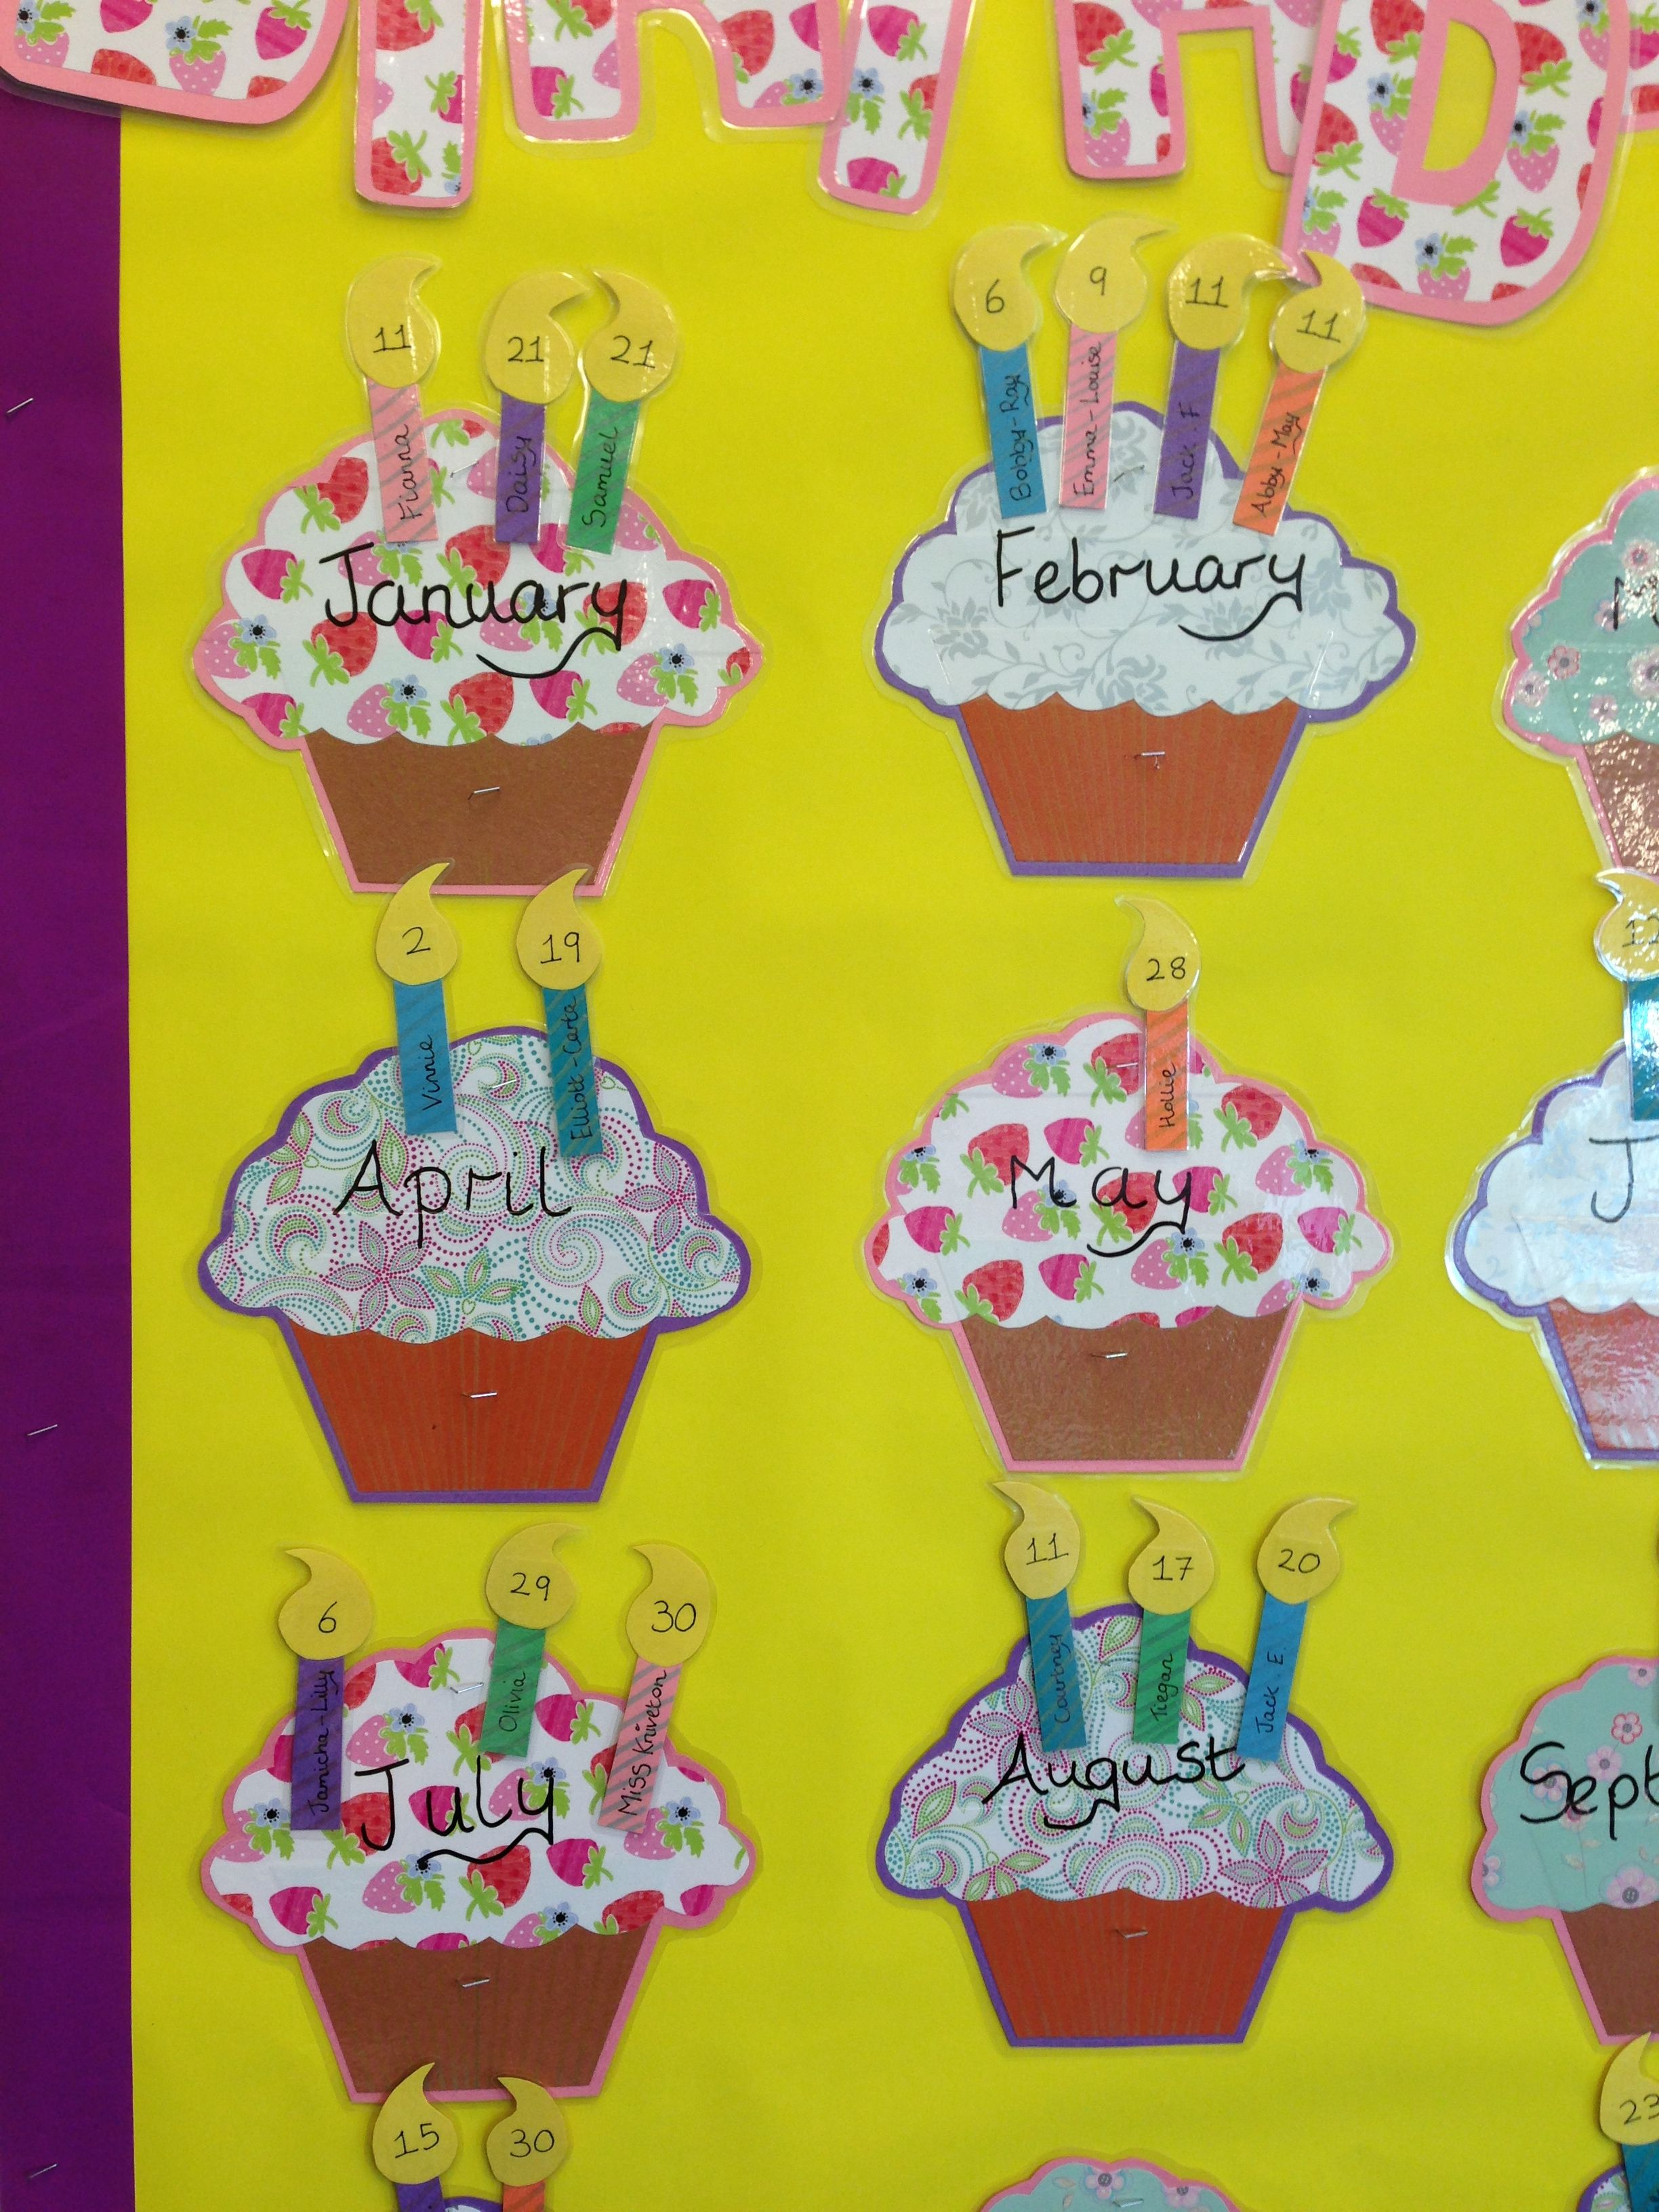 Cupcakes For Birthday Display | Projets À Essayer intended for Birthday Display Cupcakes